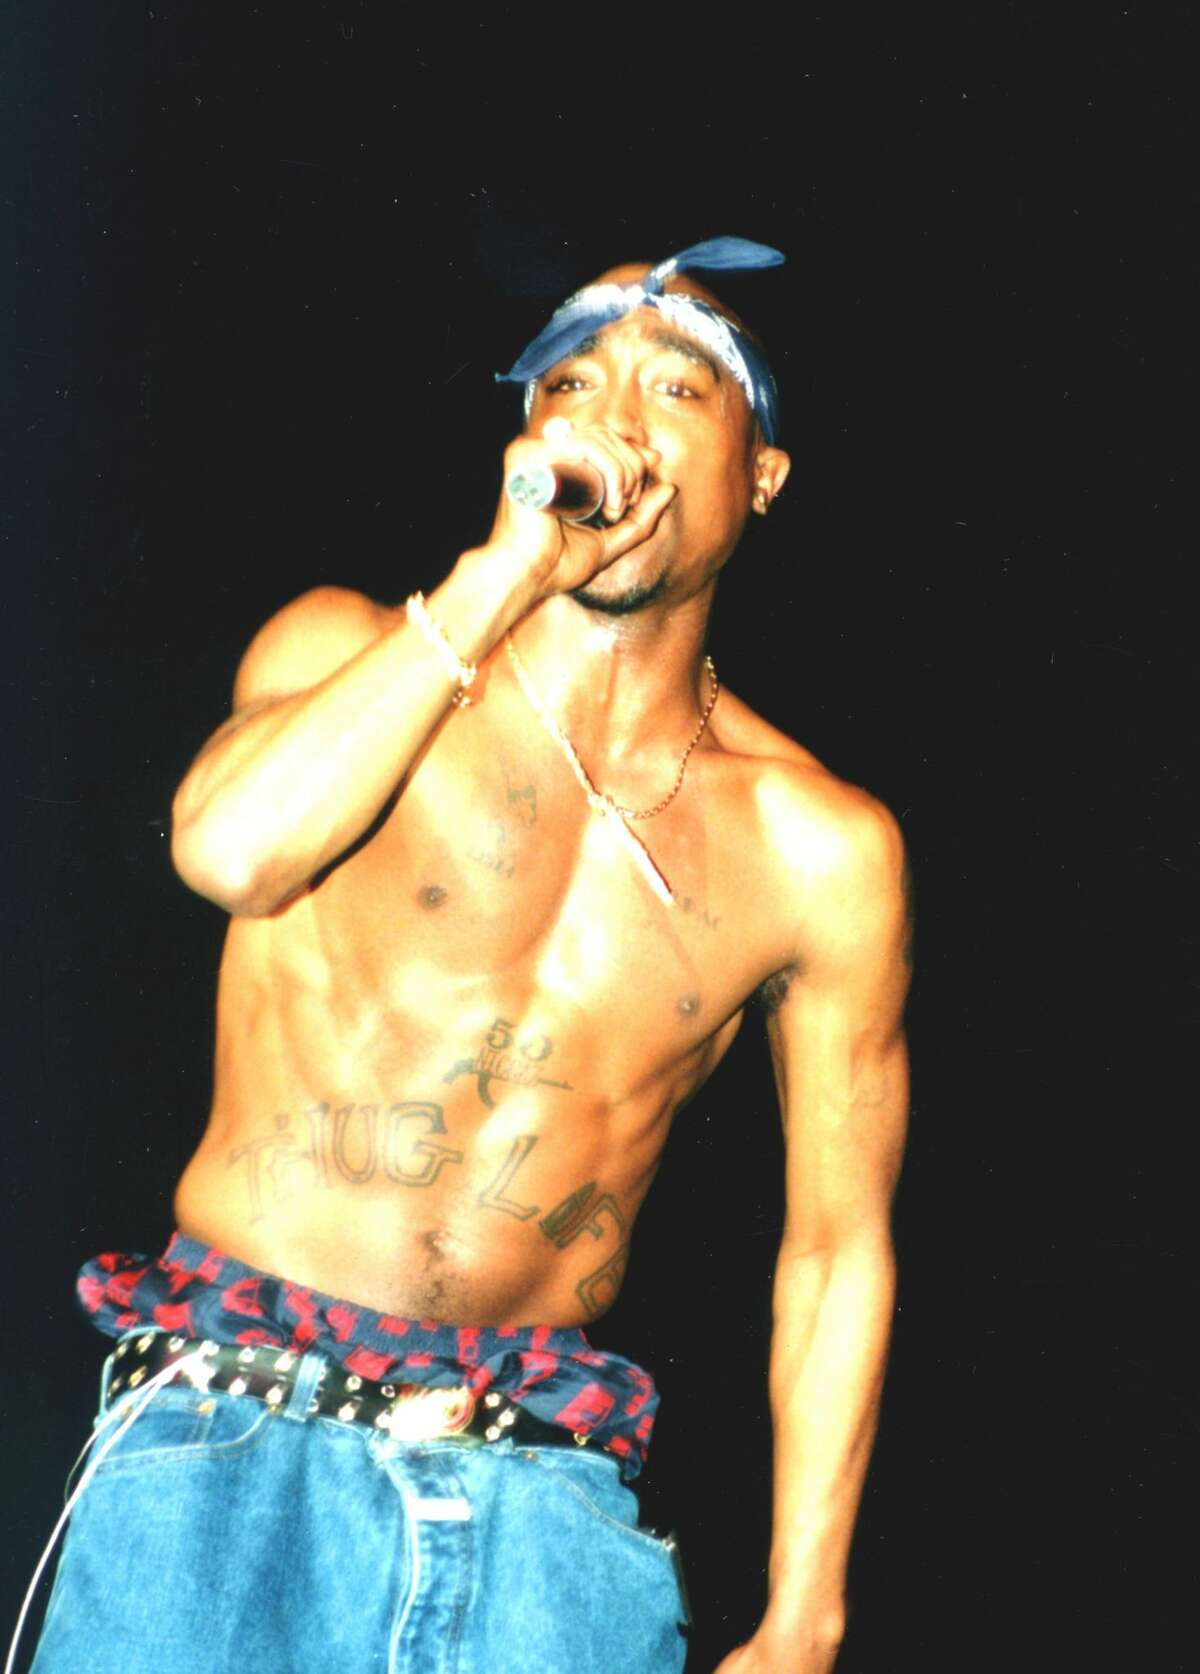 CHICAGO - MARCH 1994: Rapper Tupac Shakur performs onstage in 1994 in Chicago, Illinois.